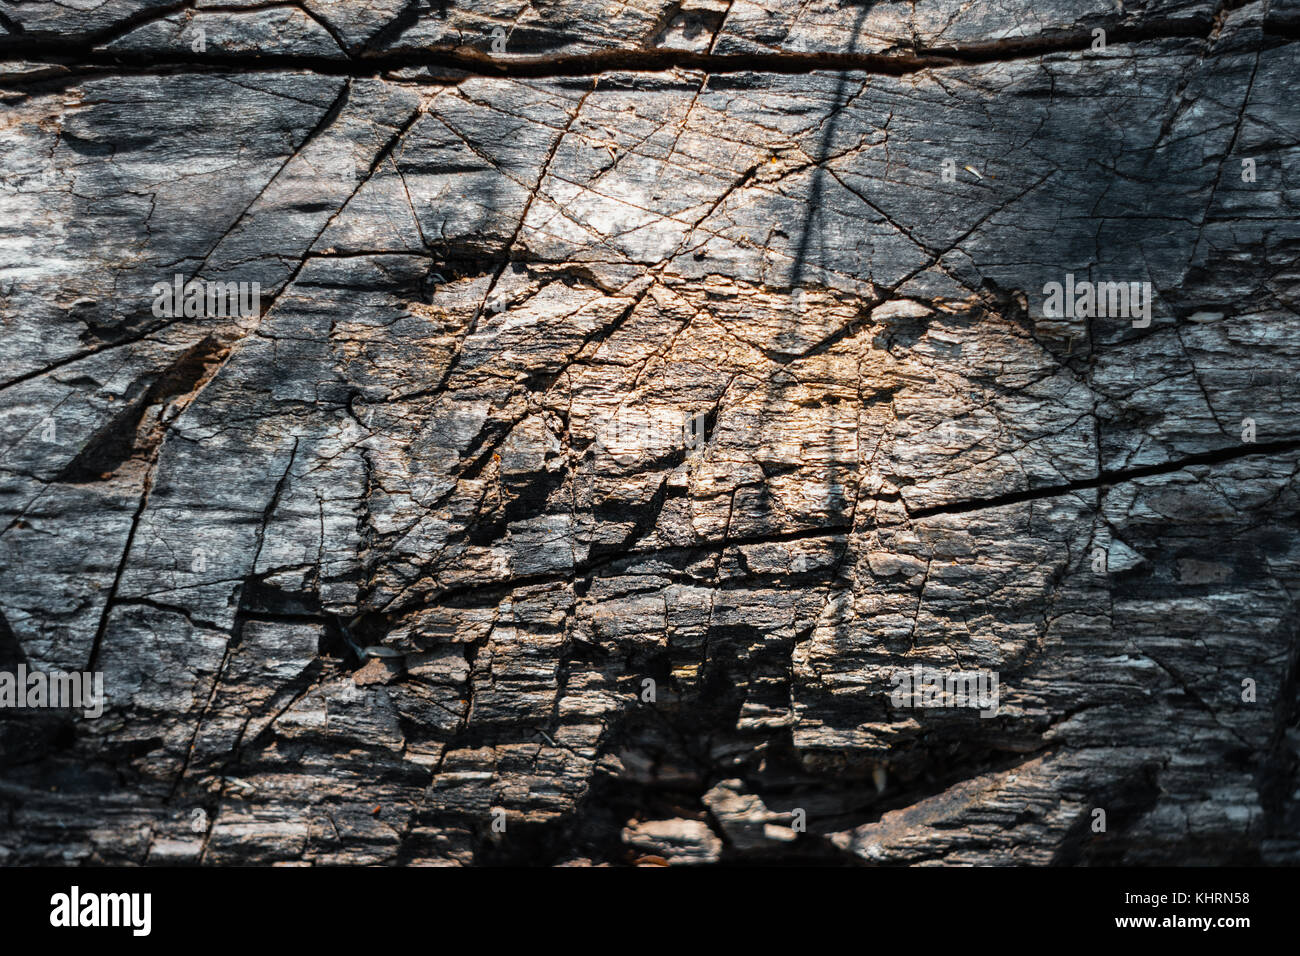 Directly Above Shot Of Carved Tree Bark With Knife Cuts - Stock Image